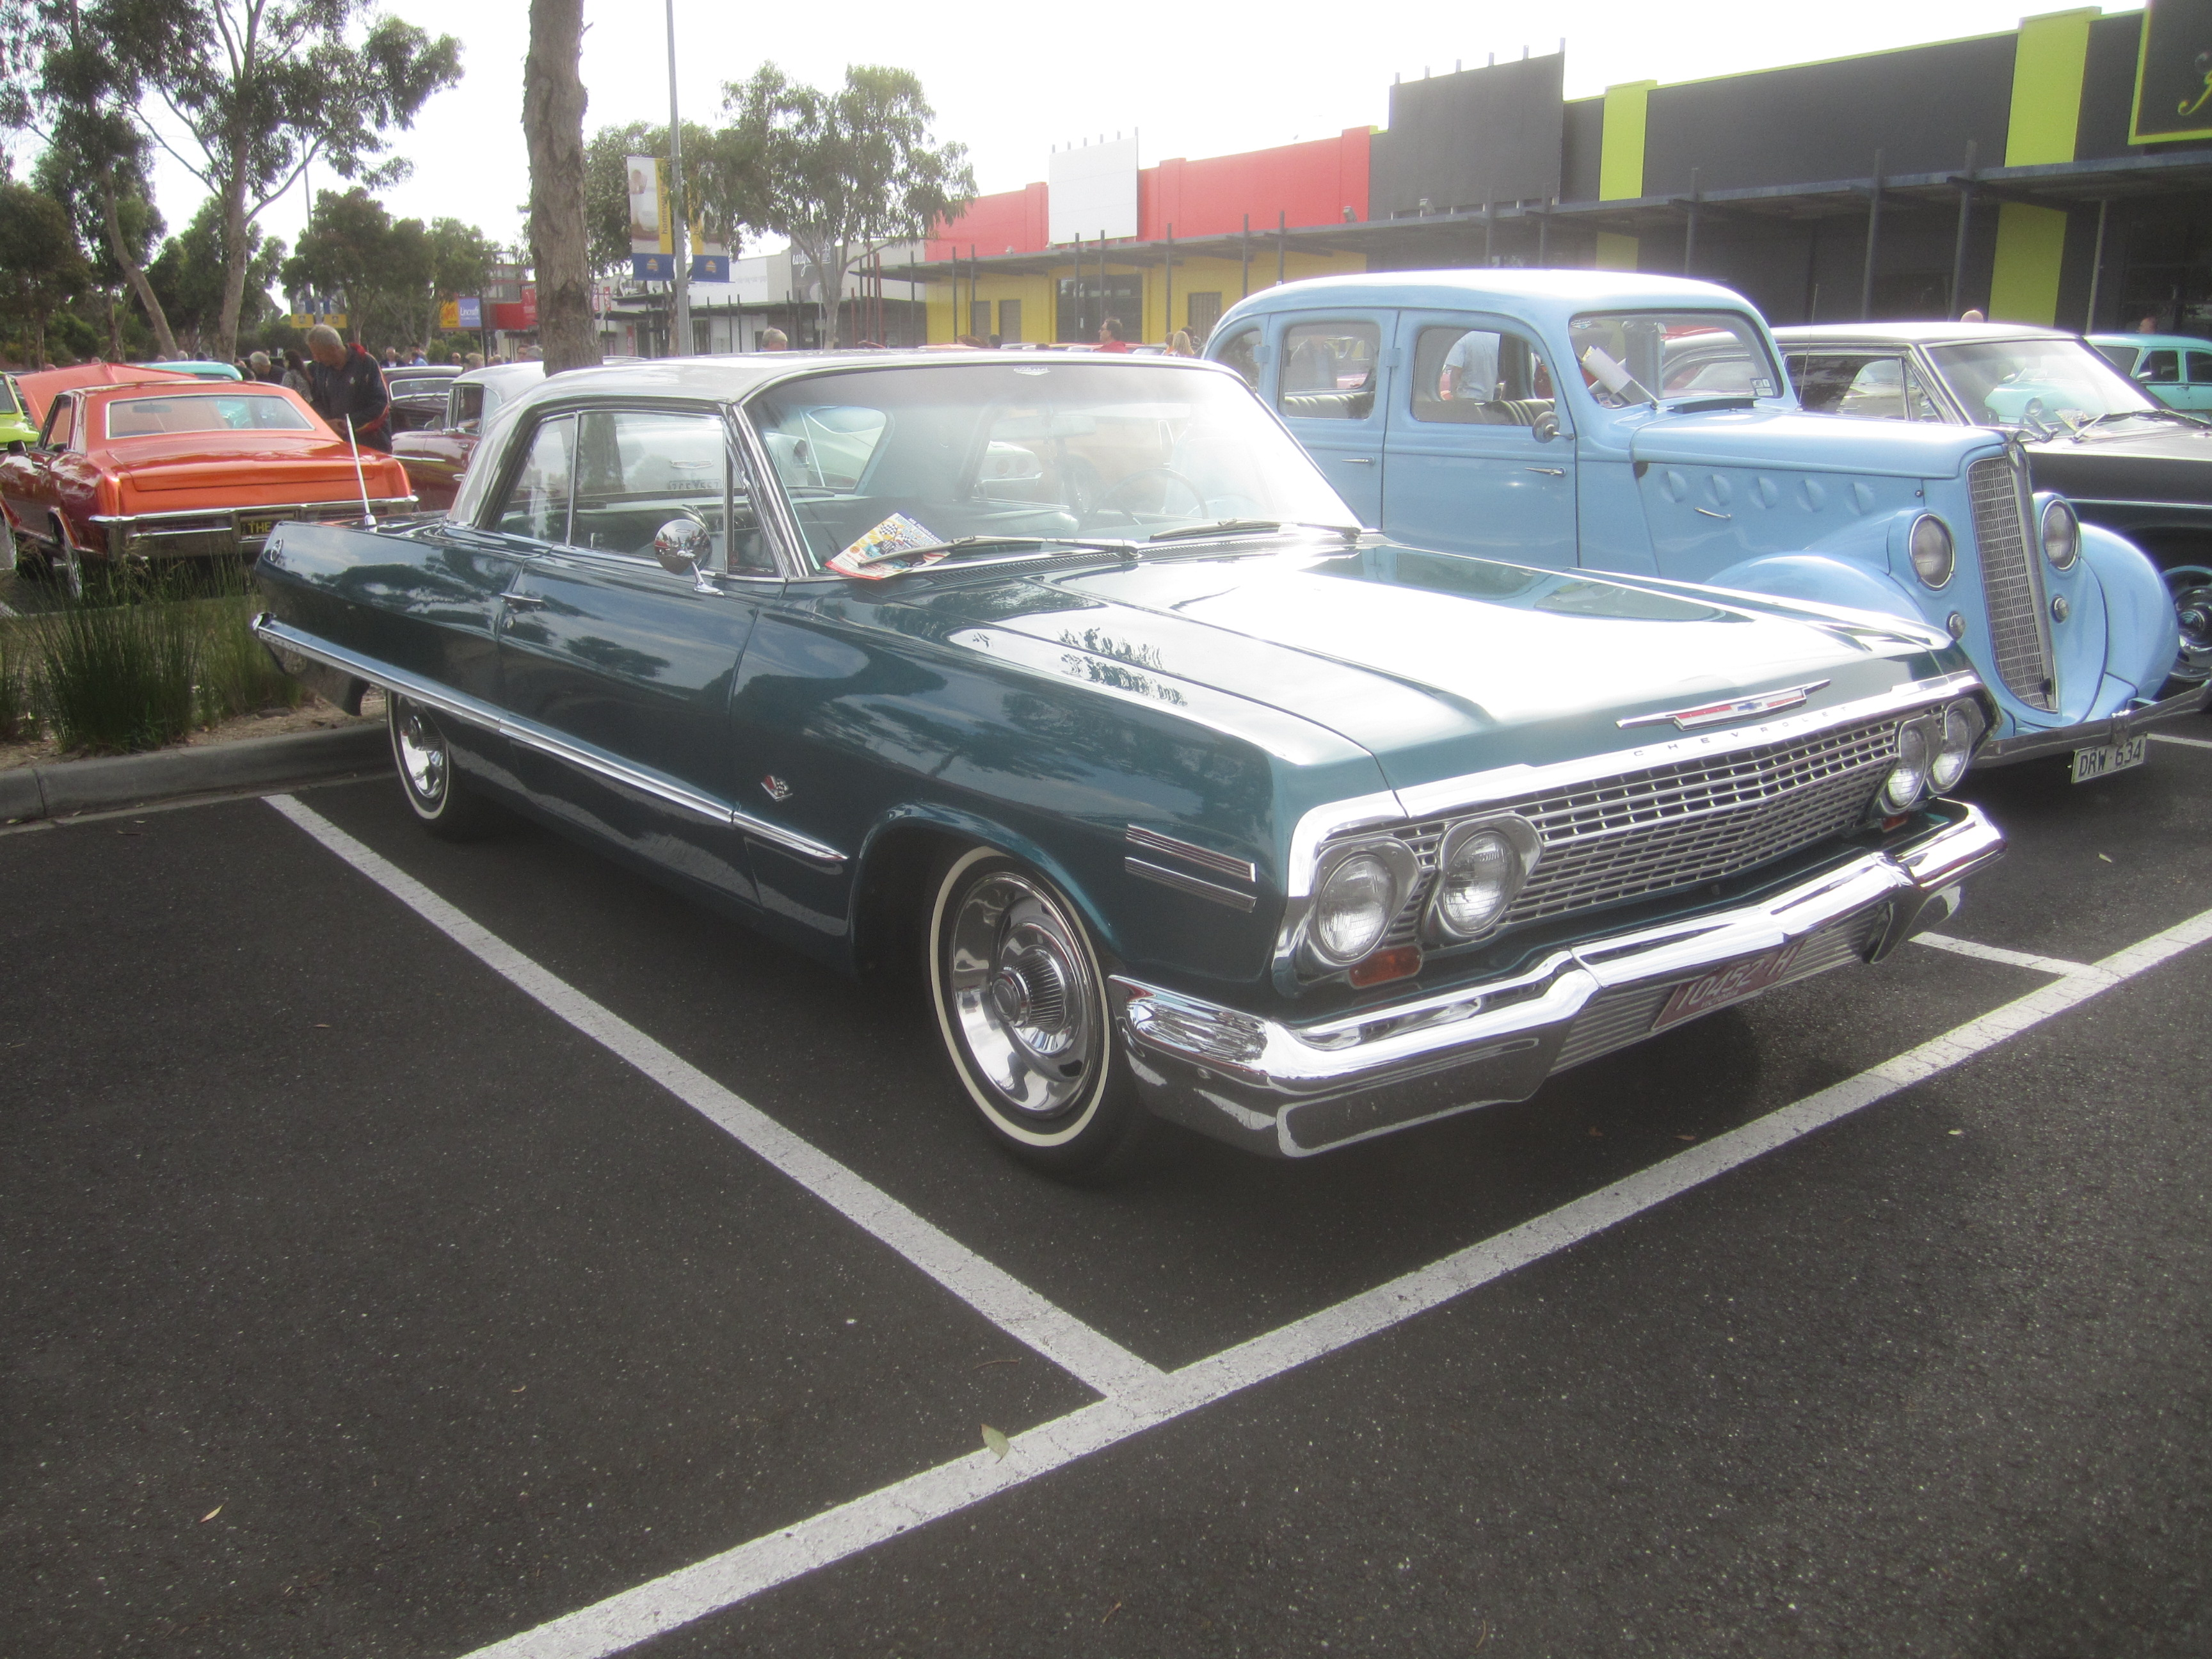 File 1963 Chevrolet Impala 2 door Hardtop also 22 Platinum Shield Chrome Rims Wheels 245 30zr22 Tires Set 5 A 6699 likewise 47147127323821483 also Dodge Charger And Dodge Challenger as well Mustang. on 03 impala with rims